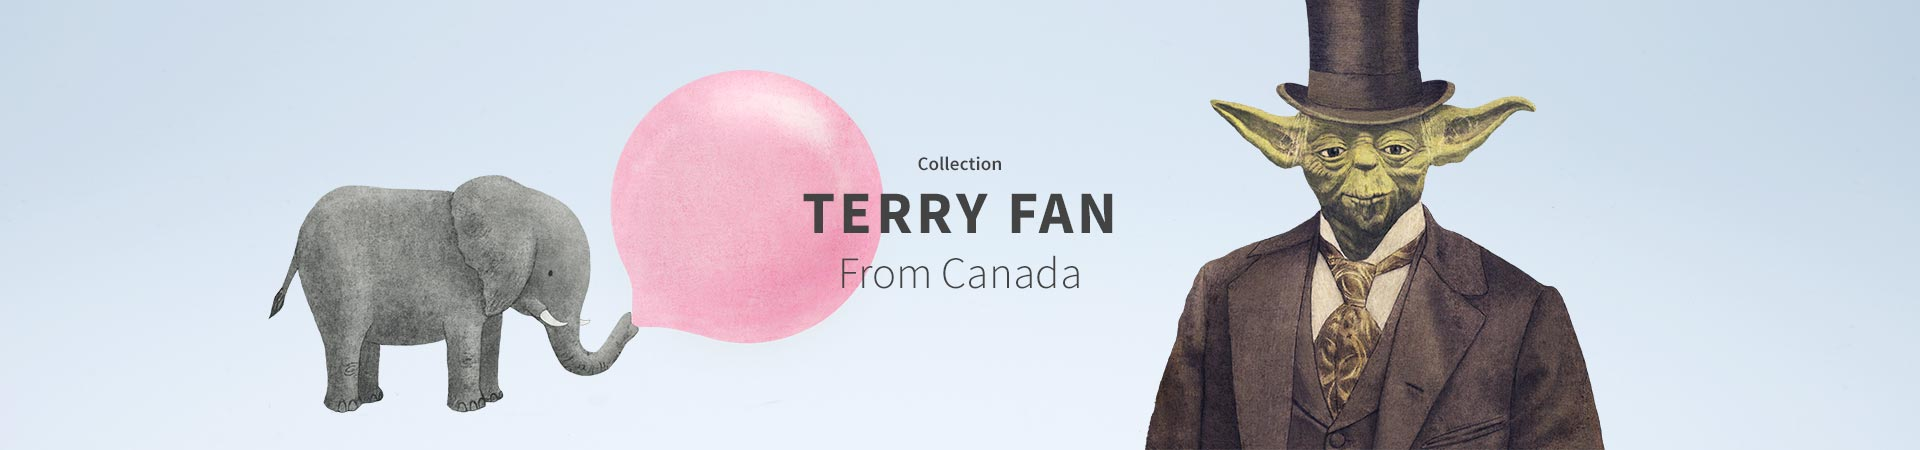 Collection Terry Fan